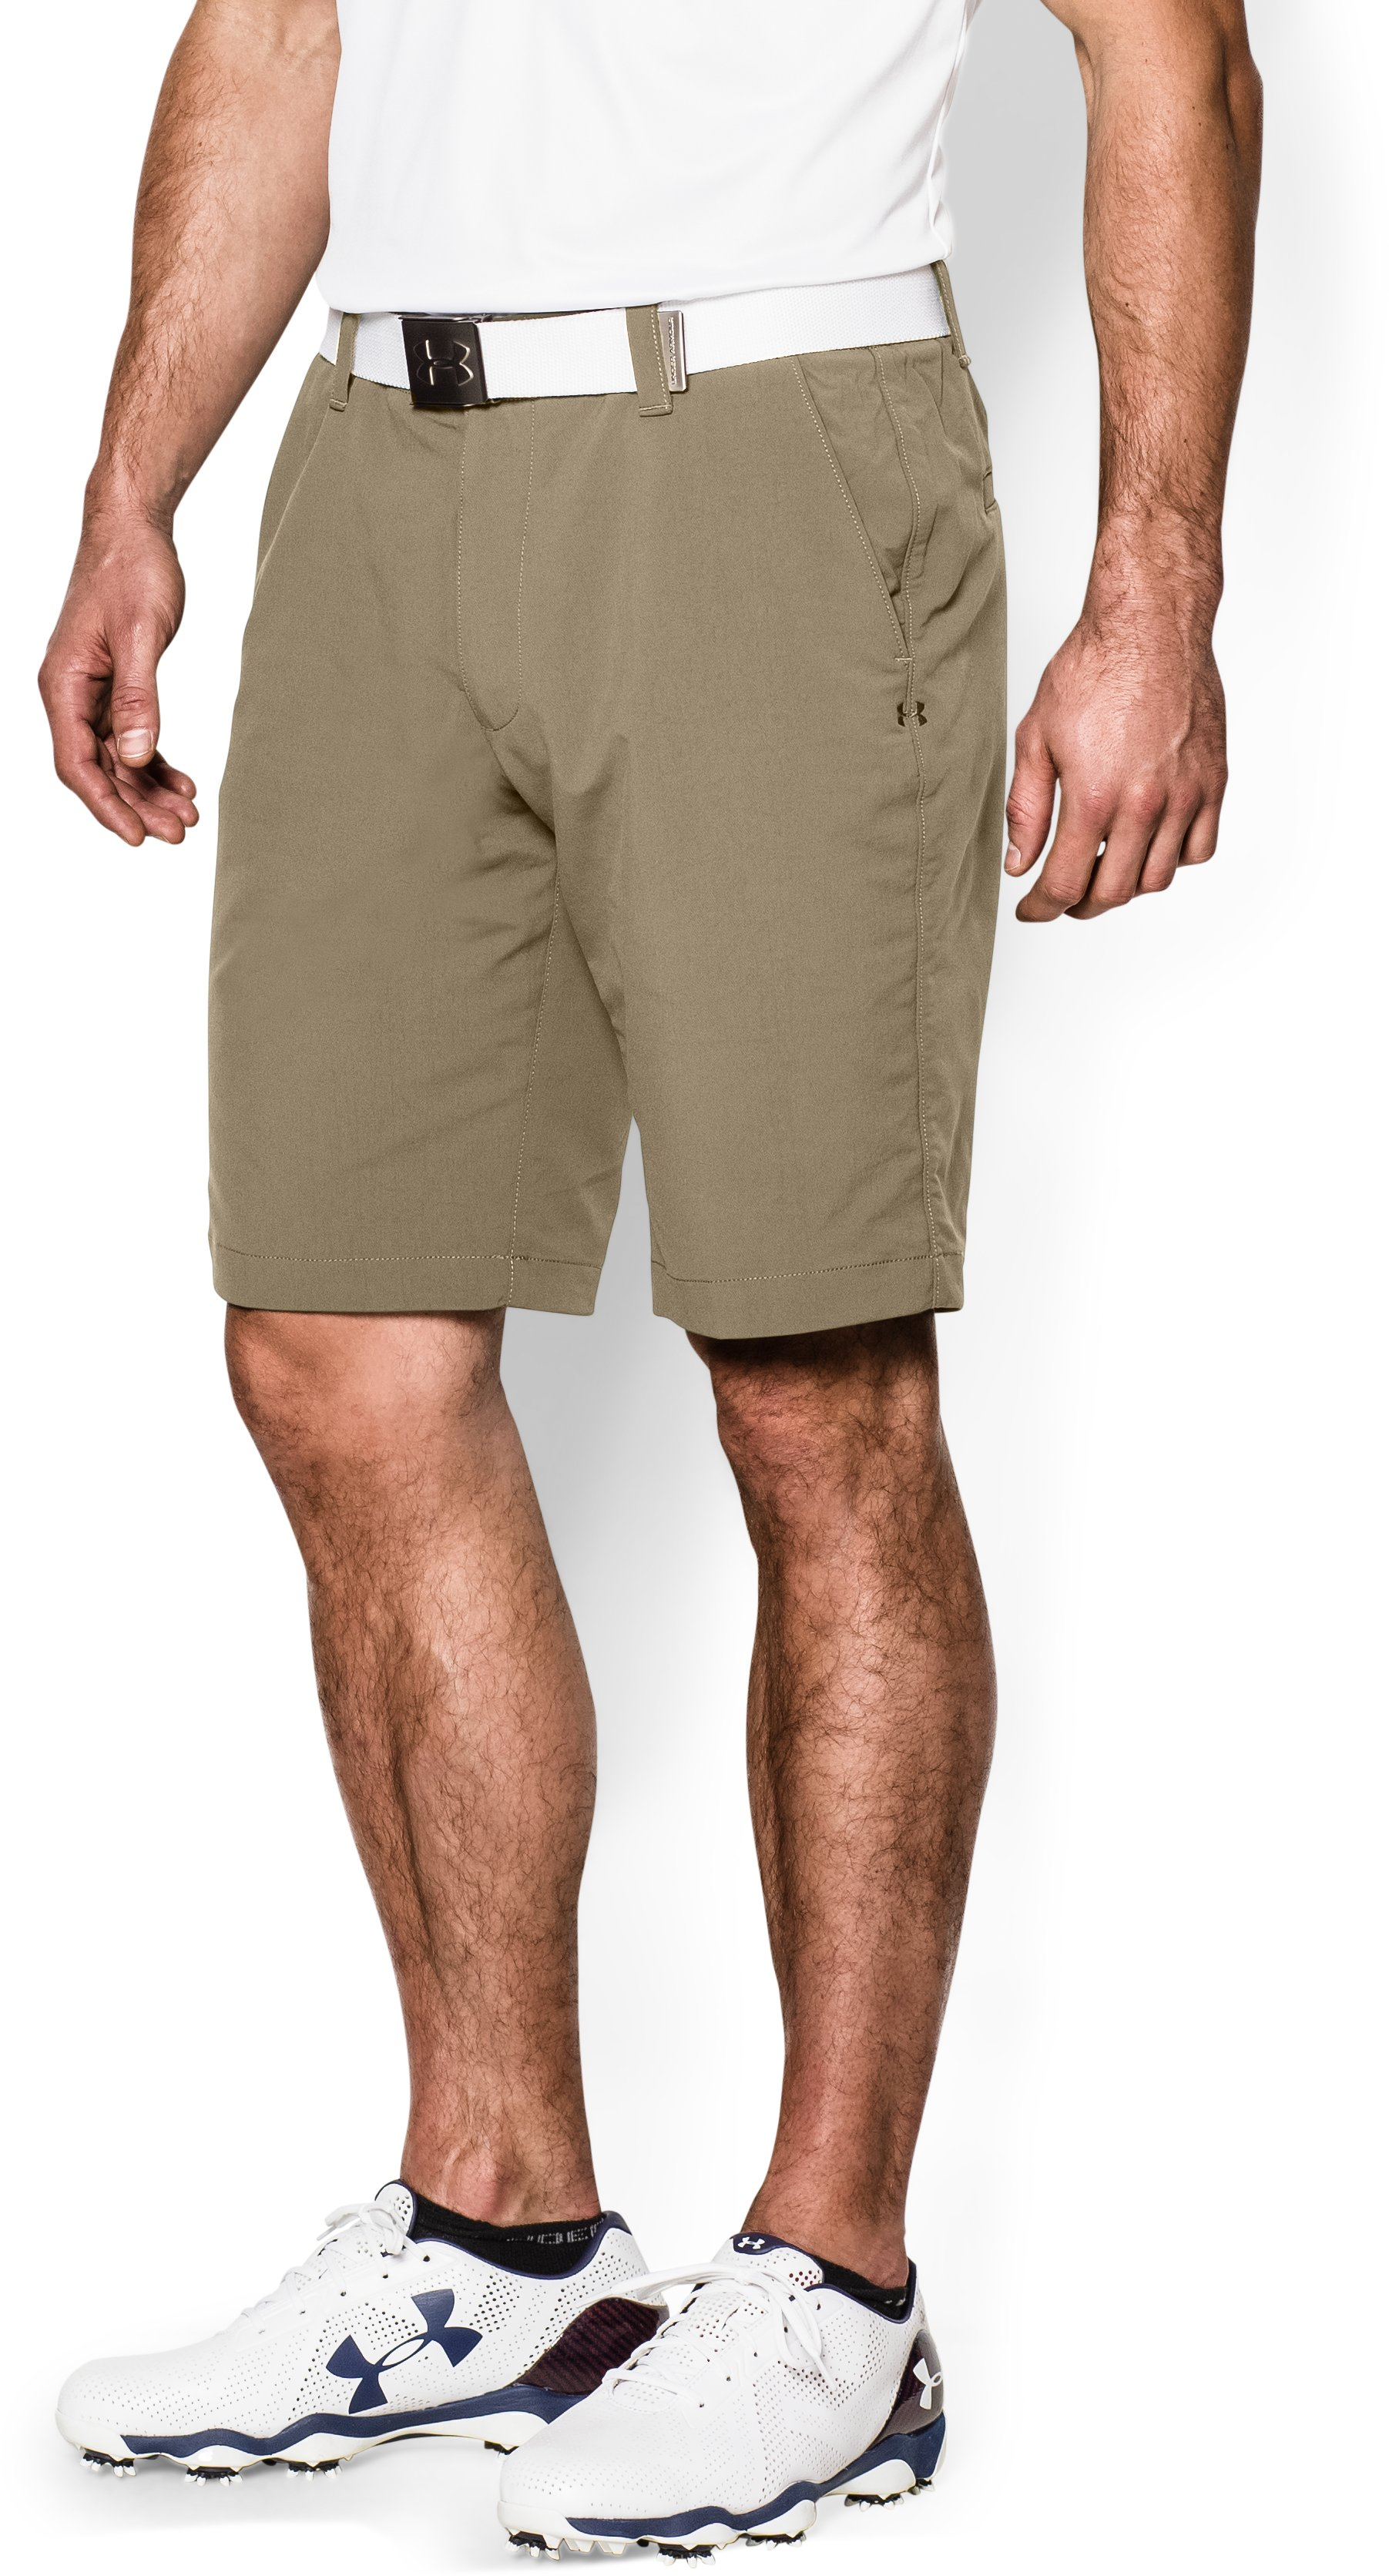 stylish camo shorts Men's UA Match Play Shorts Feel and <strong>look great</strong>!